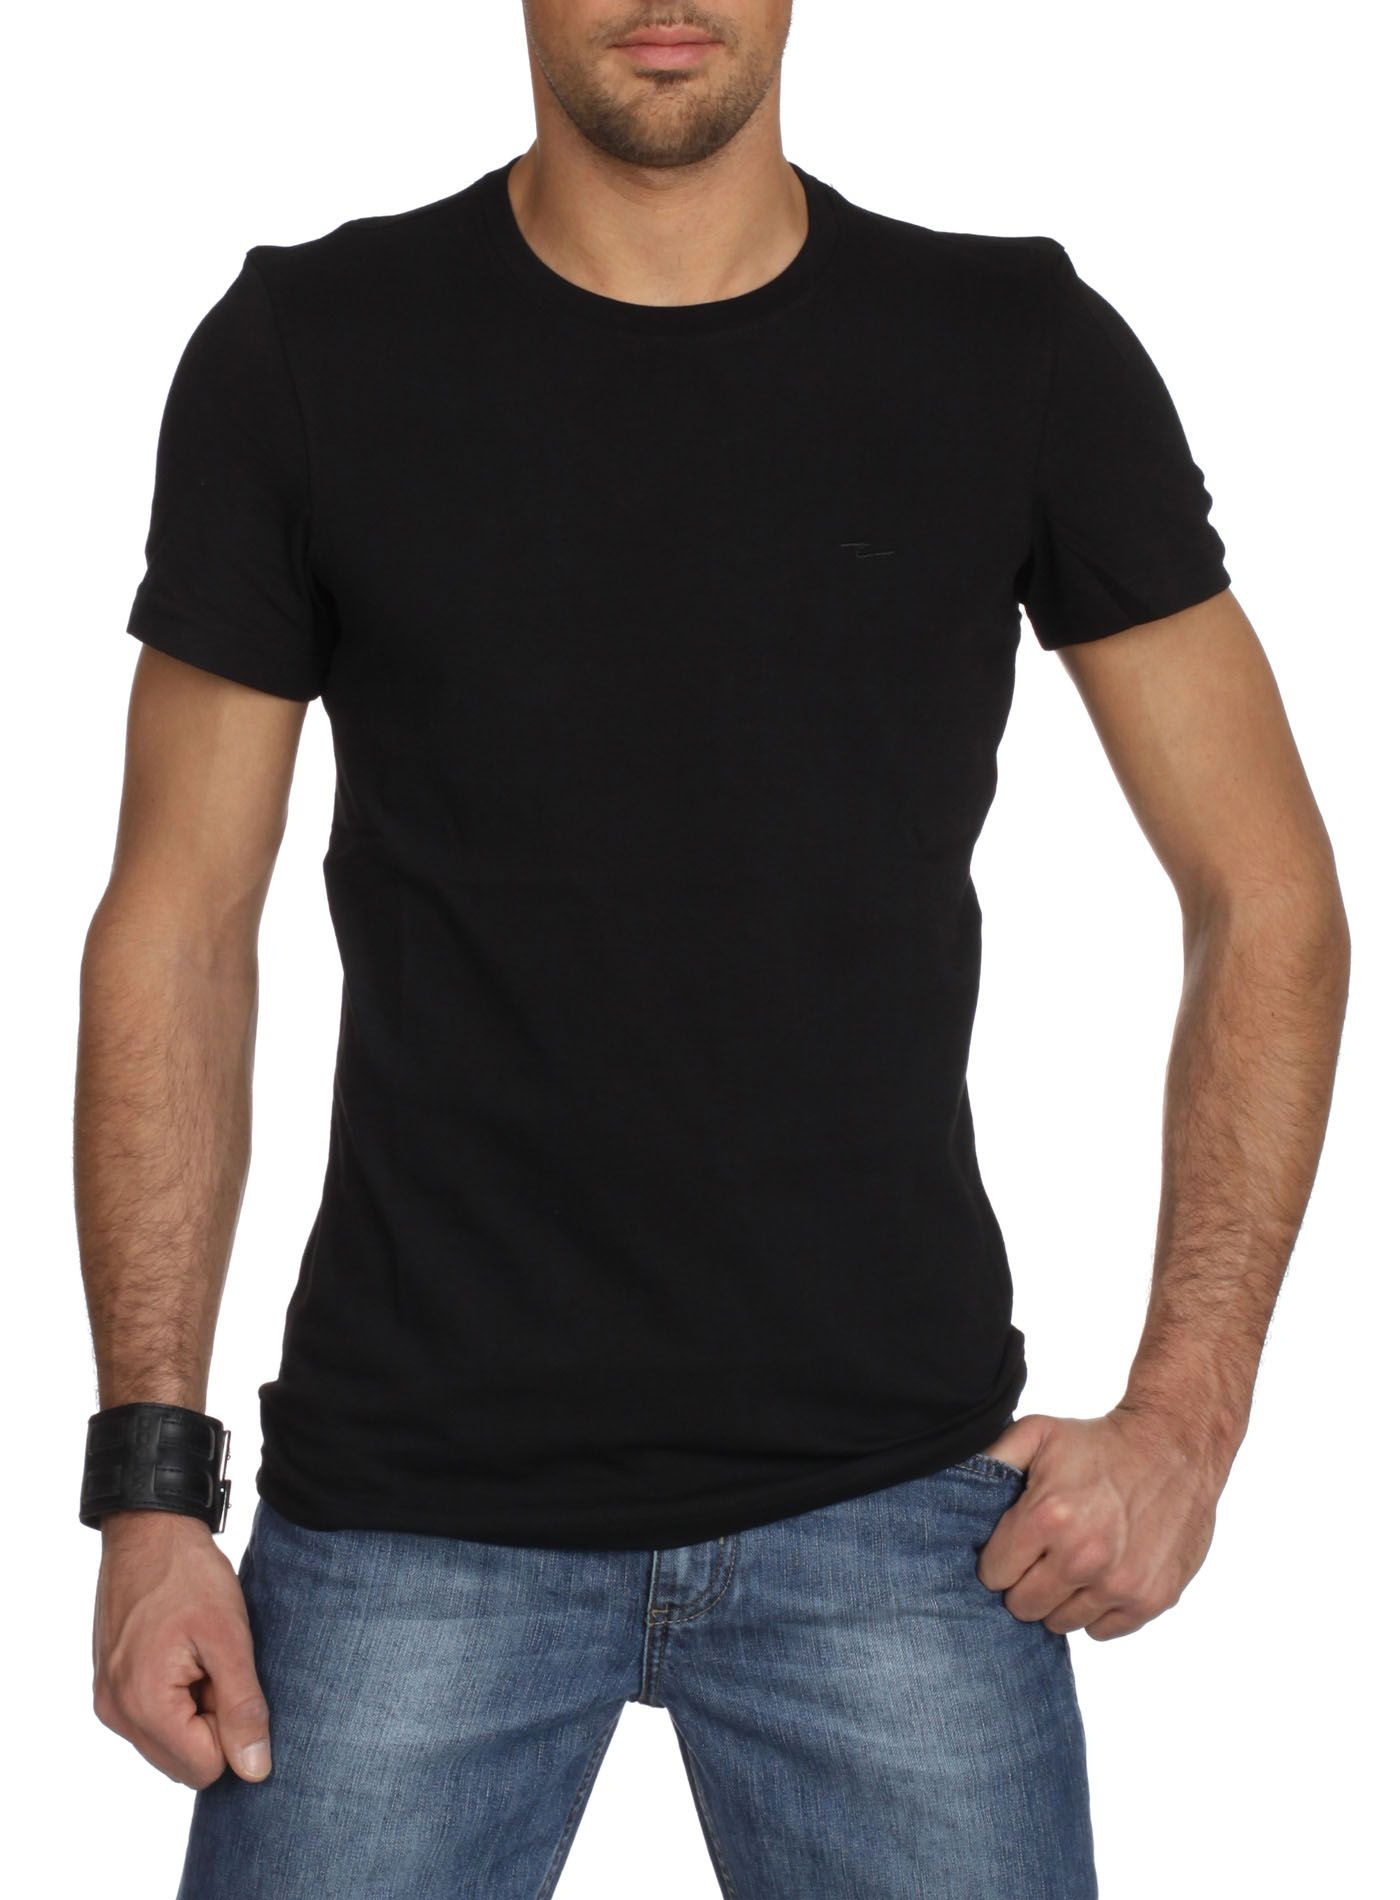 Black t shirt model template - Wholesale Blank T Shirts For Men Men S T Shirt Buy Blank T Shirt Blank T Shirts For Men Men S T Shirt Product On Alibaba Com